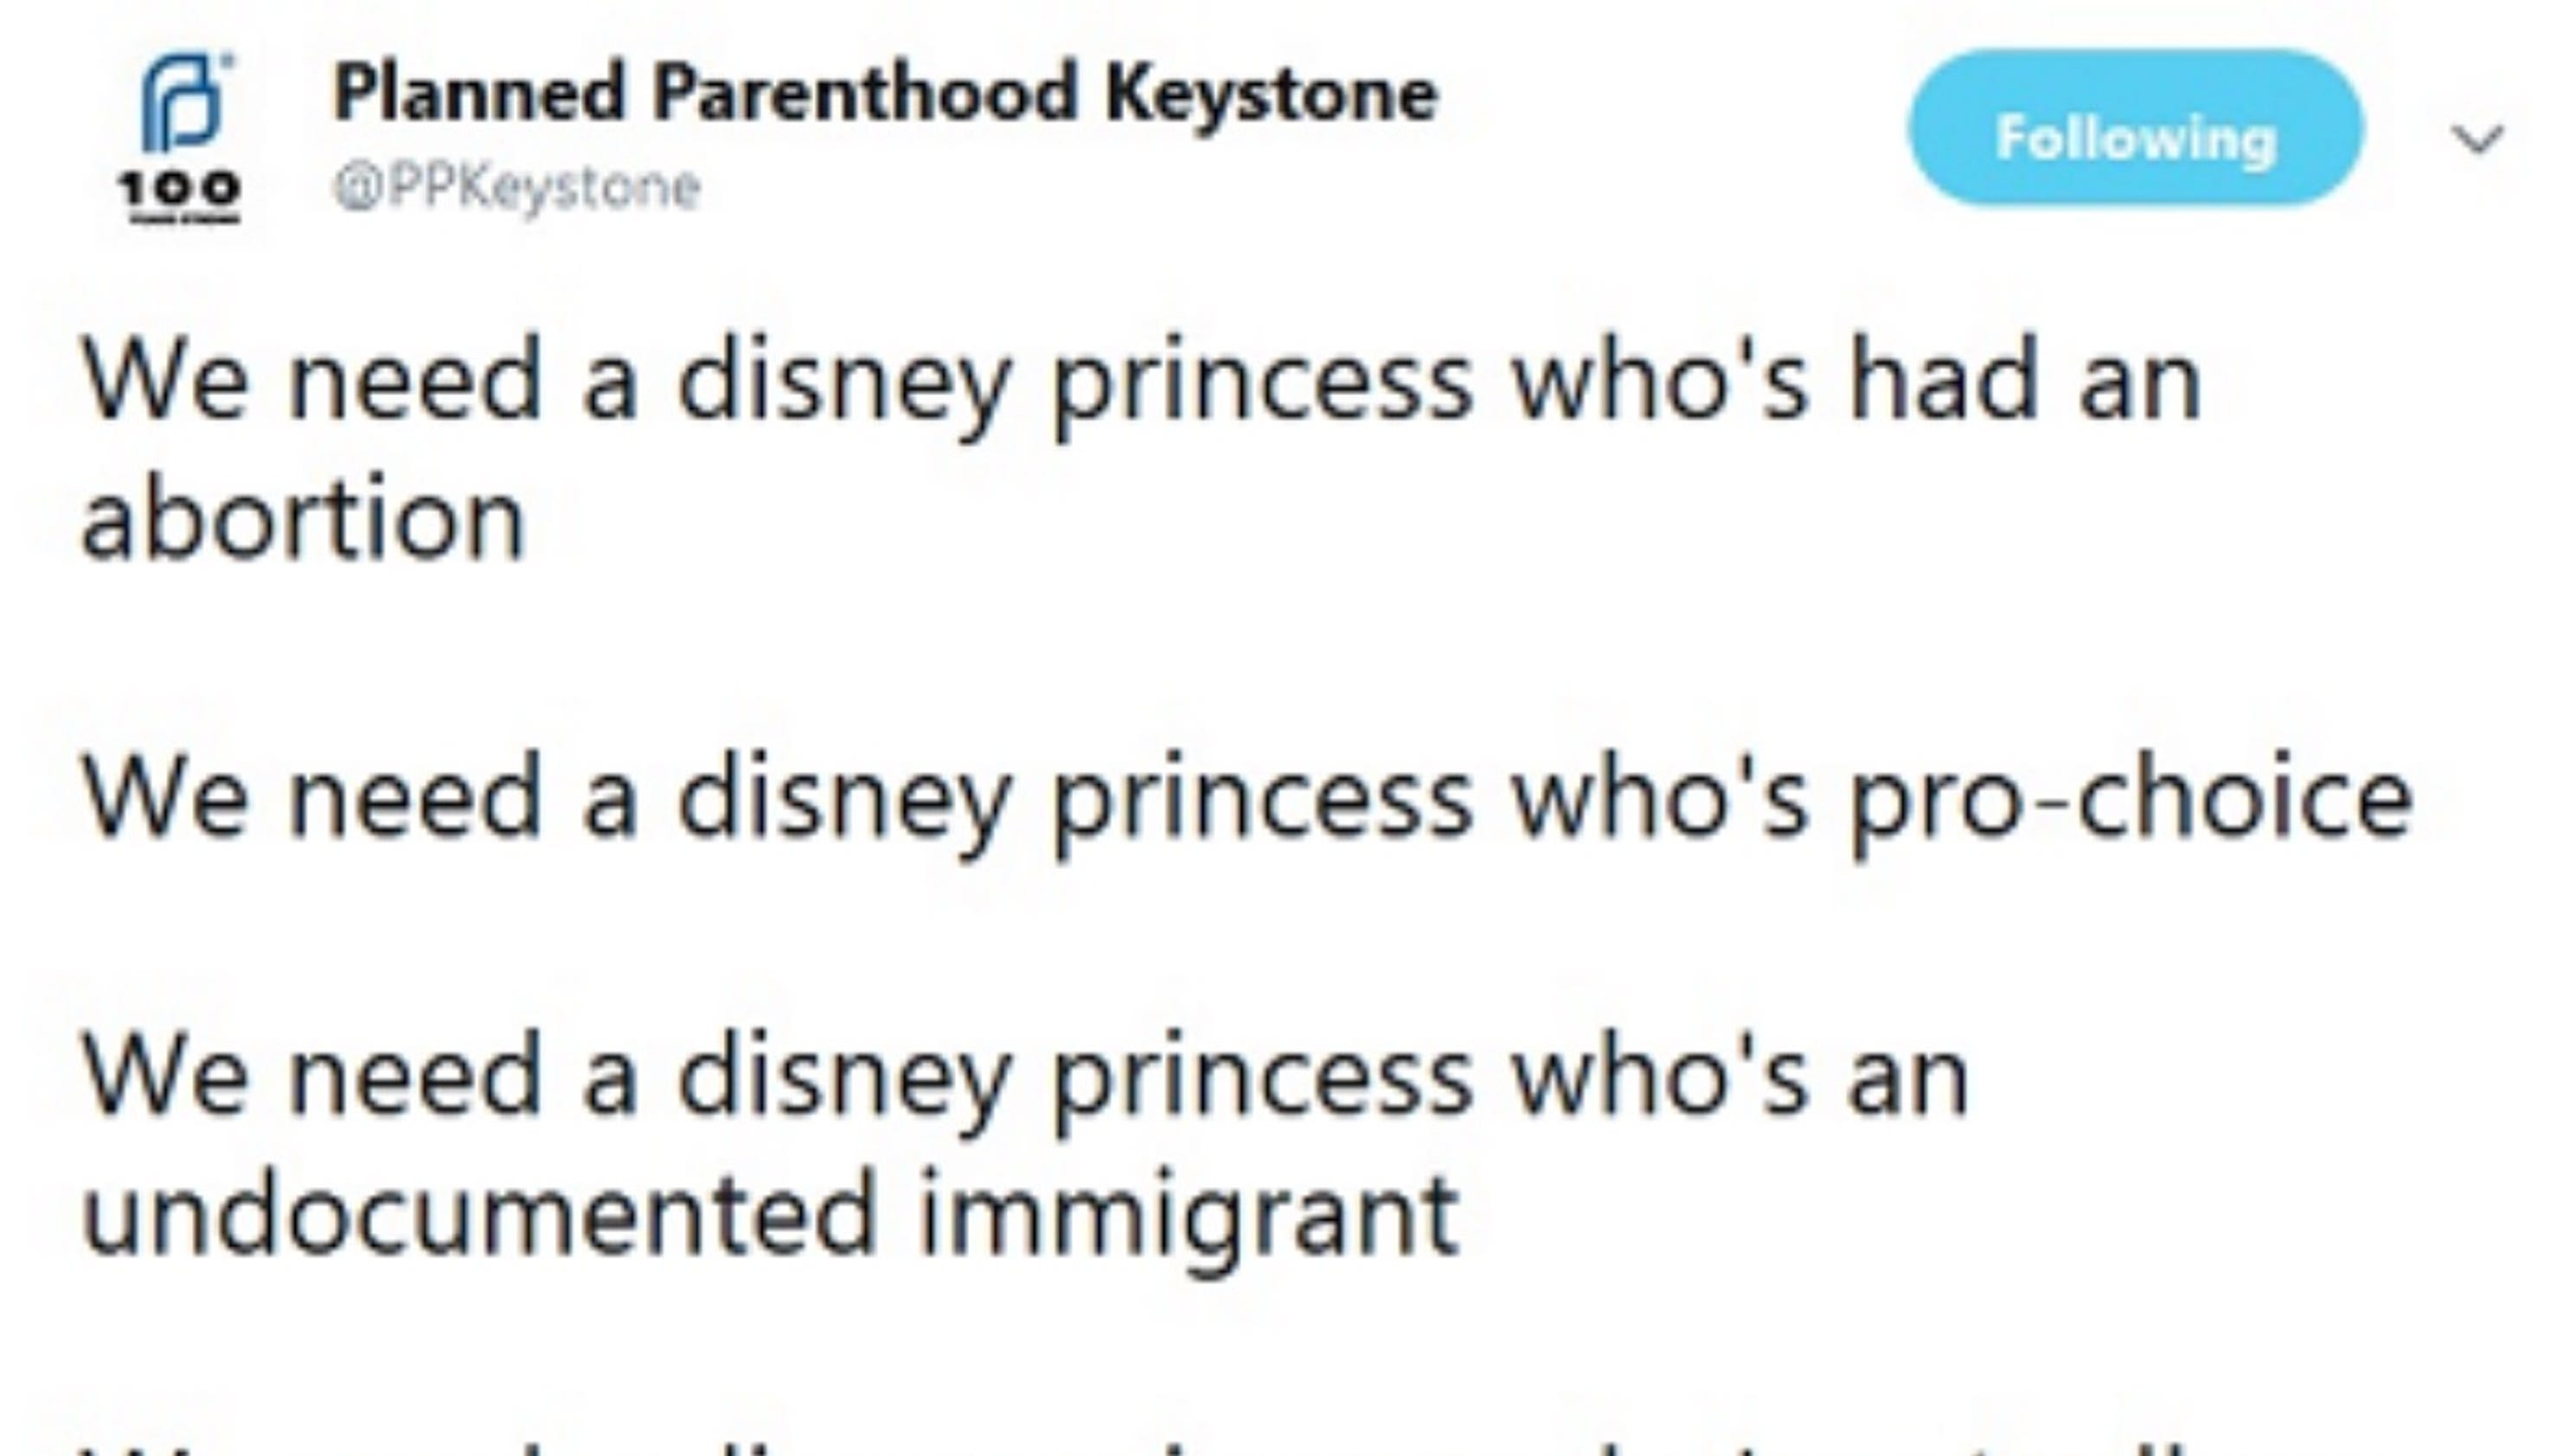 PLANNED PARENTHOOD called for DISNEY princess whos had an abortion